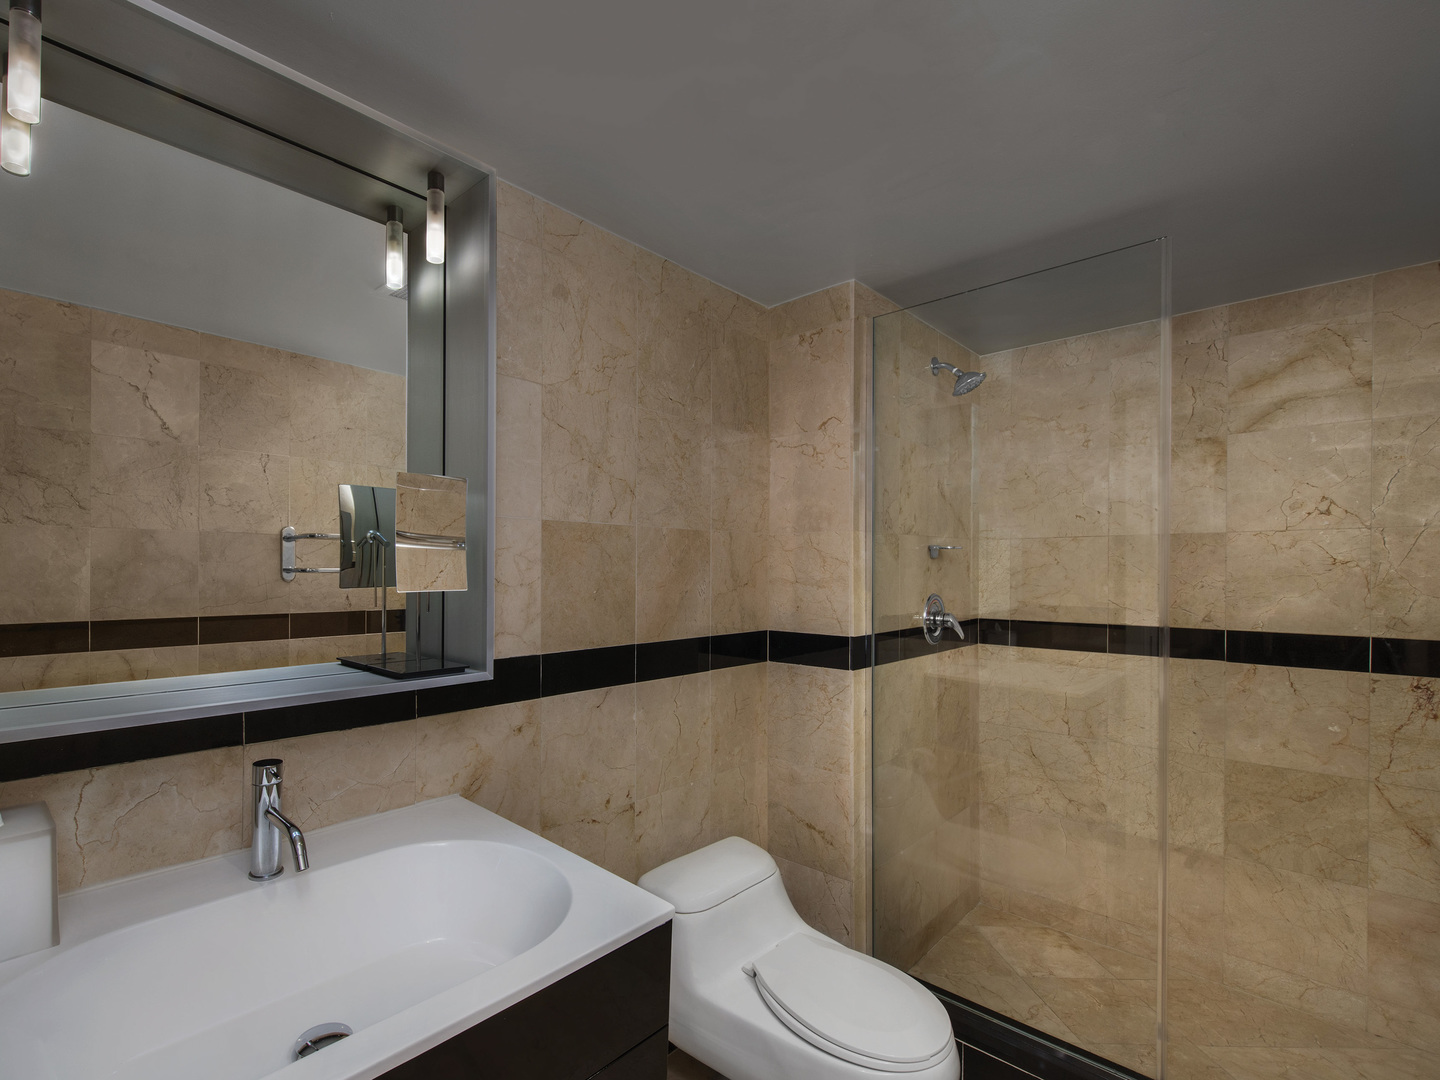 Marriott Vacation Club Pulse<span class='trademark'>®</span>, South Beach 2-Bedroom Suite Master bath. Marriott Vacation Club Pulse<span class='trademark'>®</span>, South Beach is located in Miami Beach, Florida United States.